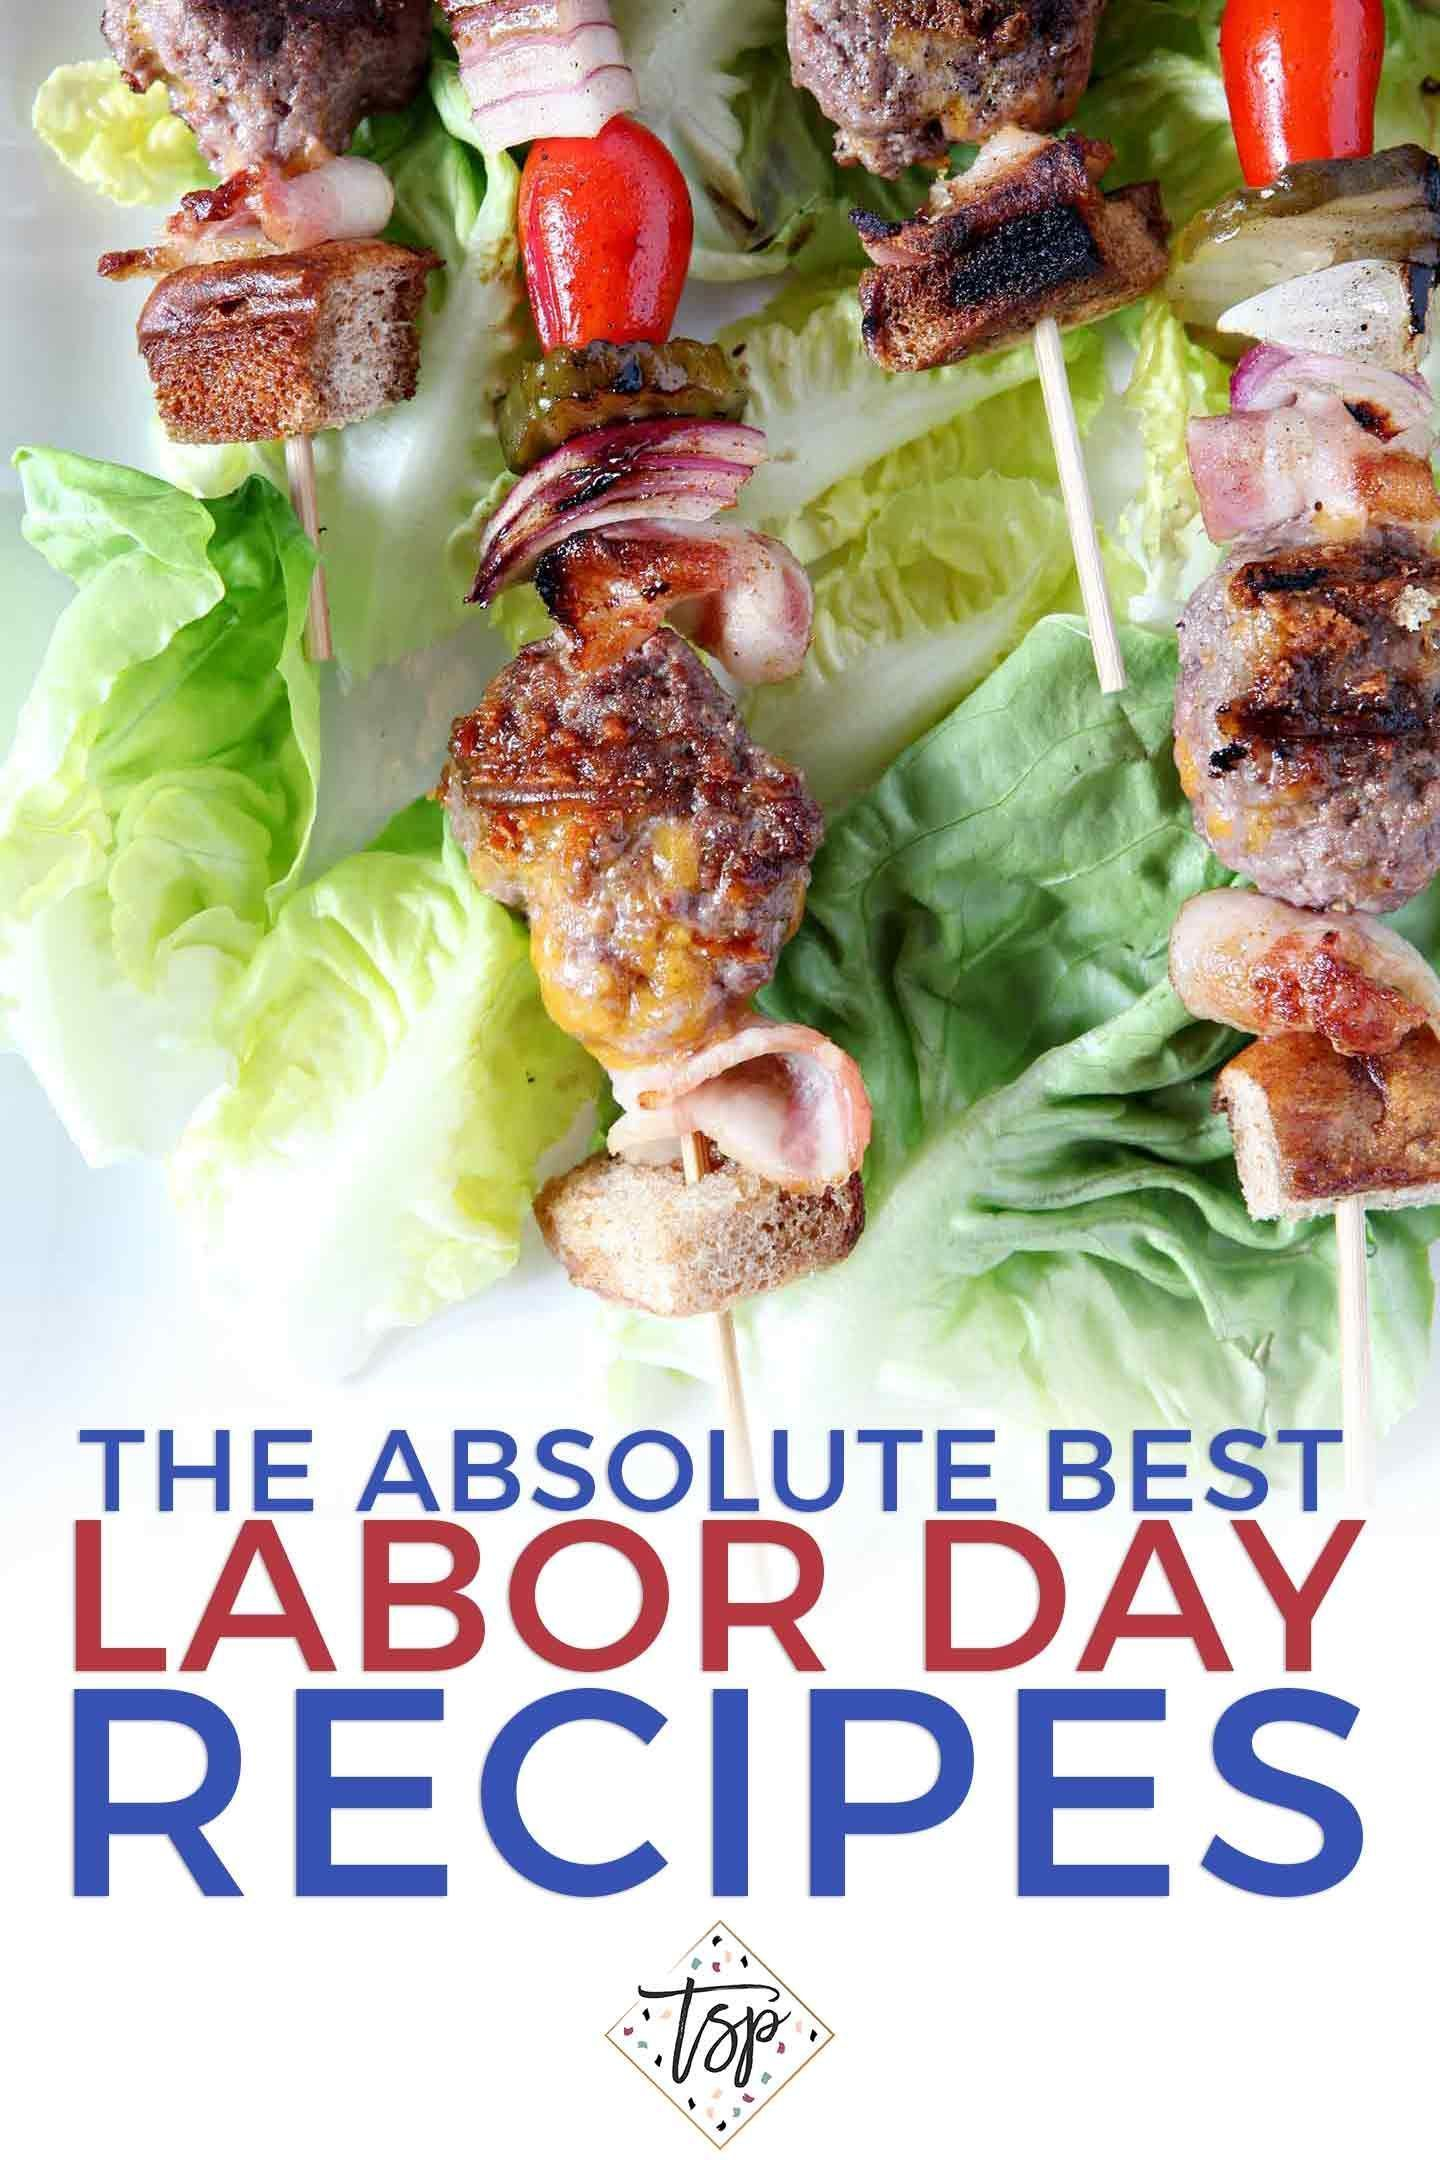 As the days grow shorter and Labor Day weekend draws near, we prepare for the end of summer. Celebrate the goodness and bounty of the season with all of these delicious and eclectic Labor Day recipes! | Labor Day recipes | Labor Day food | Labor Day entrees | Labor Day grilling | Labor Day barbecue | Labor Day picnic | Labor Day side dishes | Labor Day desserts | #speckledpalate #dessertfoodrecipes #labordaydesserts As the days grow shorter and Labor Day weekend draws near, we prepare for the en #labordaydesserts